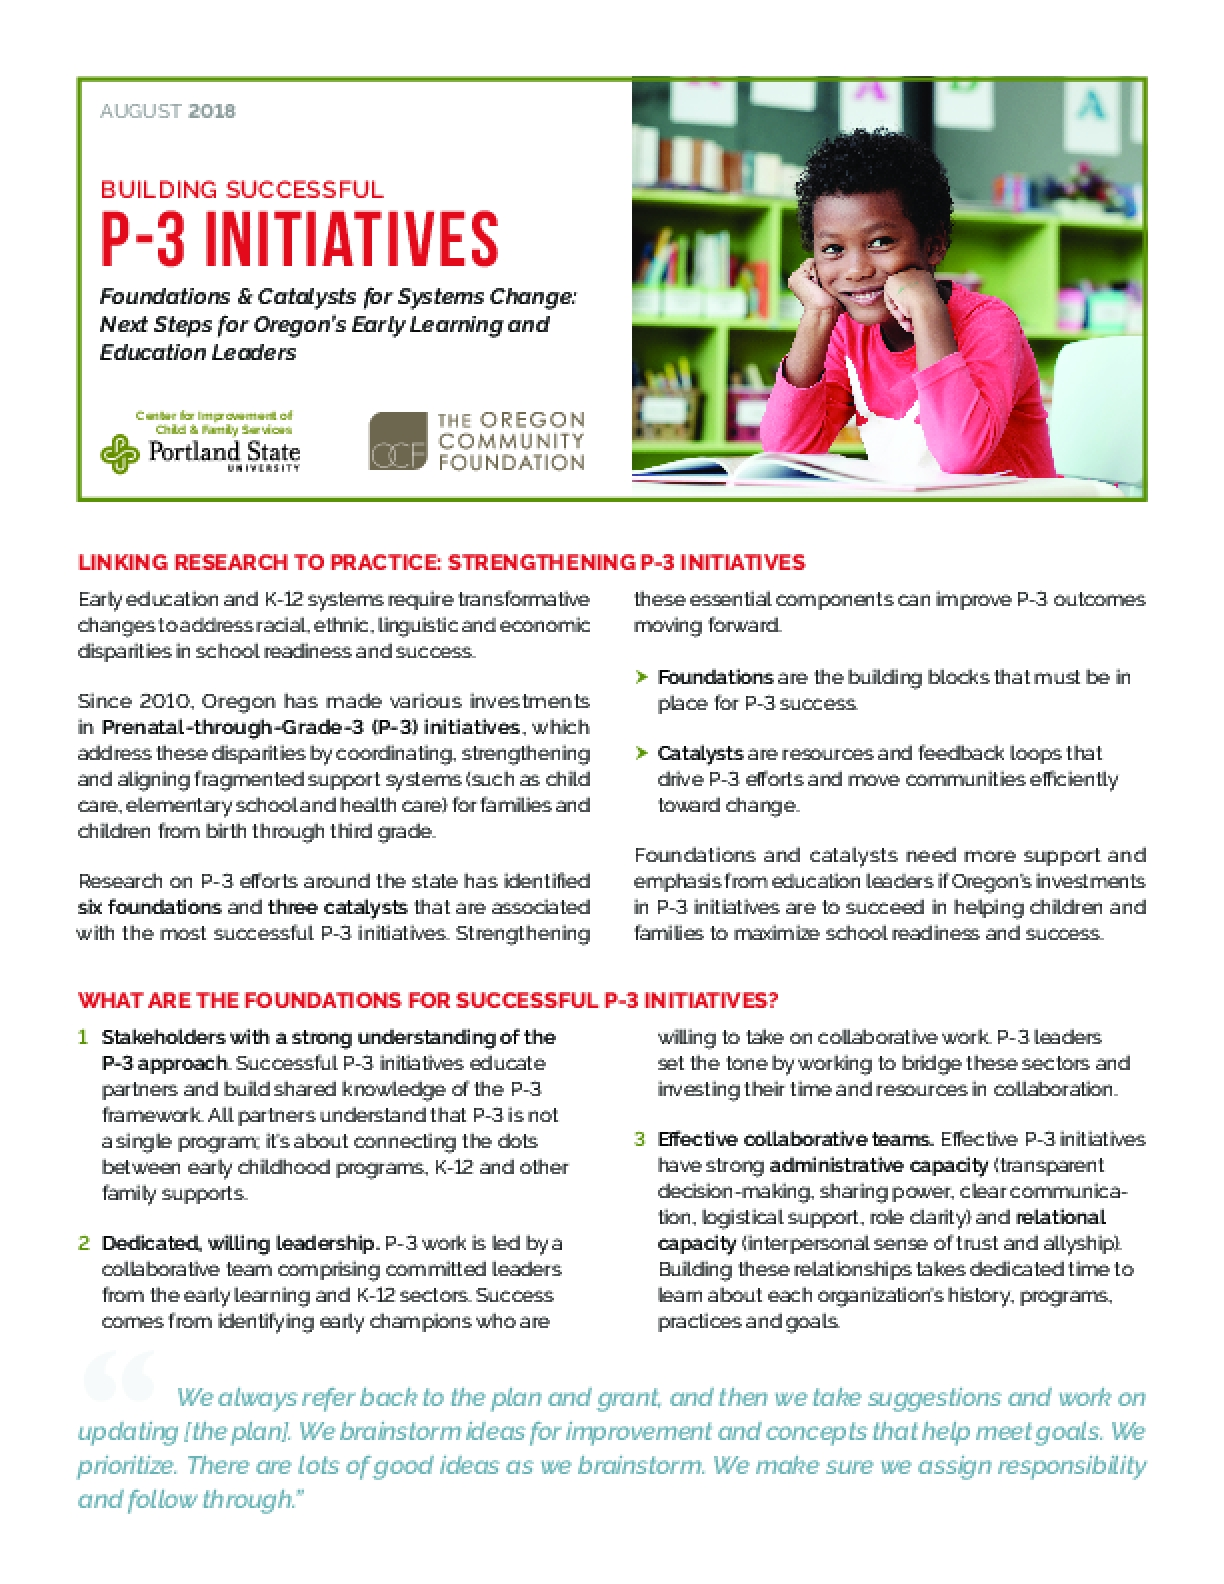 Foundations & Catalysts for Systems Change: Next Steps for Oregon's Early Learning and Education Leaders